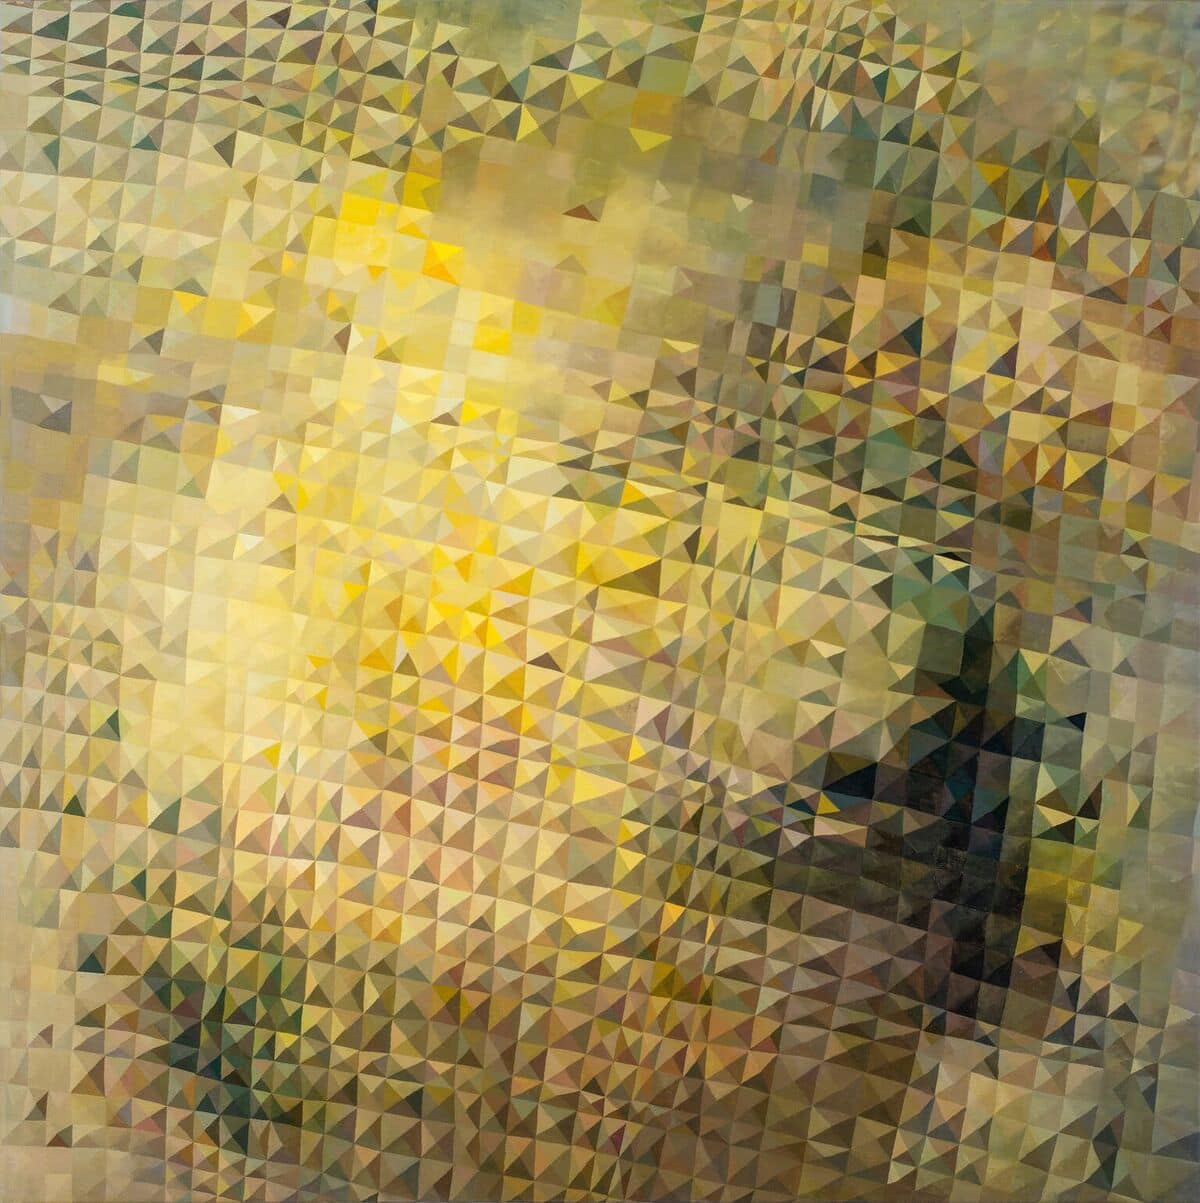 Star Lemon Quartz by Lyndal Hargrave, 120x120cm